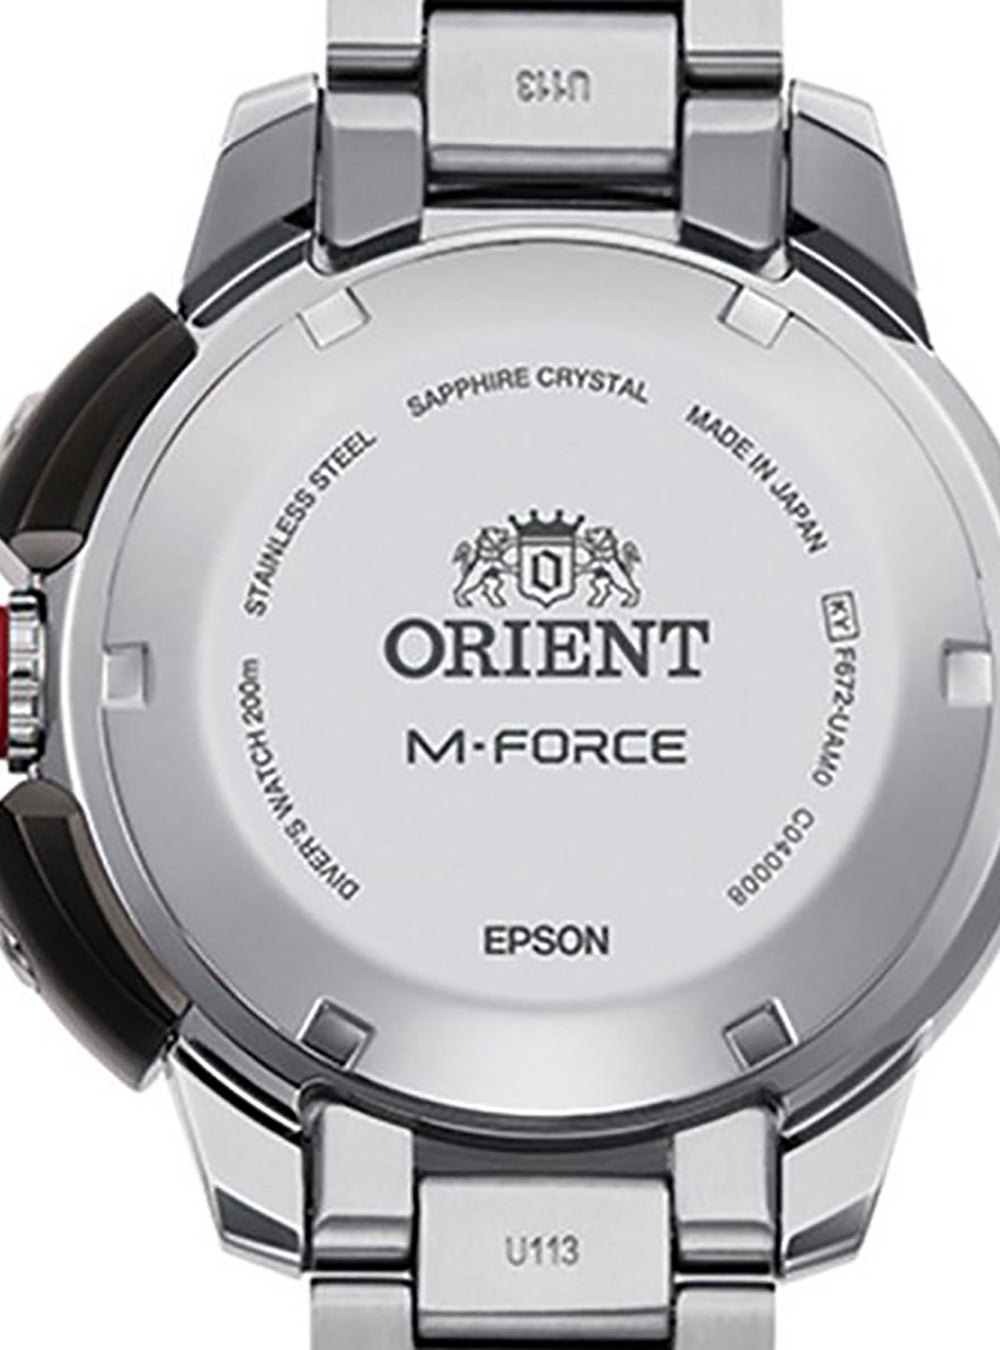 ORIENT M-FORCE SPORTS 70TH ANNIVERSARY RN-AC0L03B MADE IN JAPAN JDM